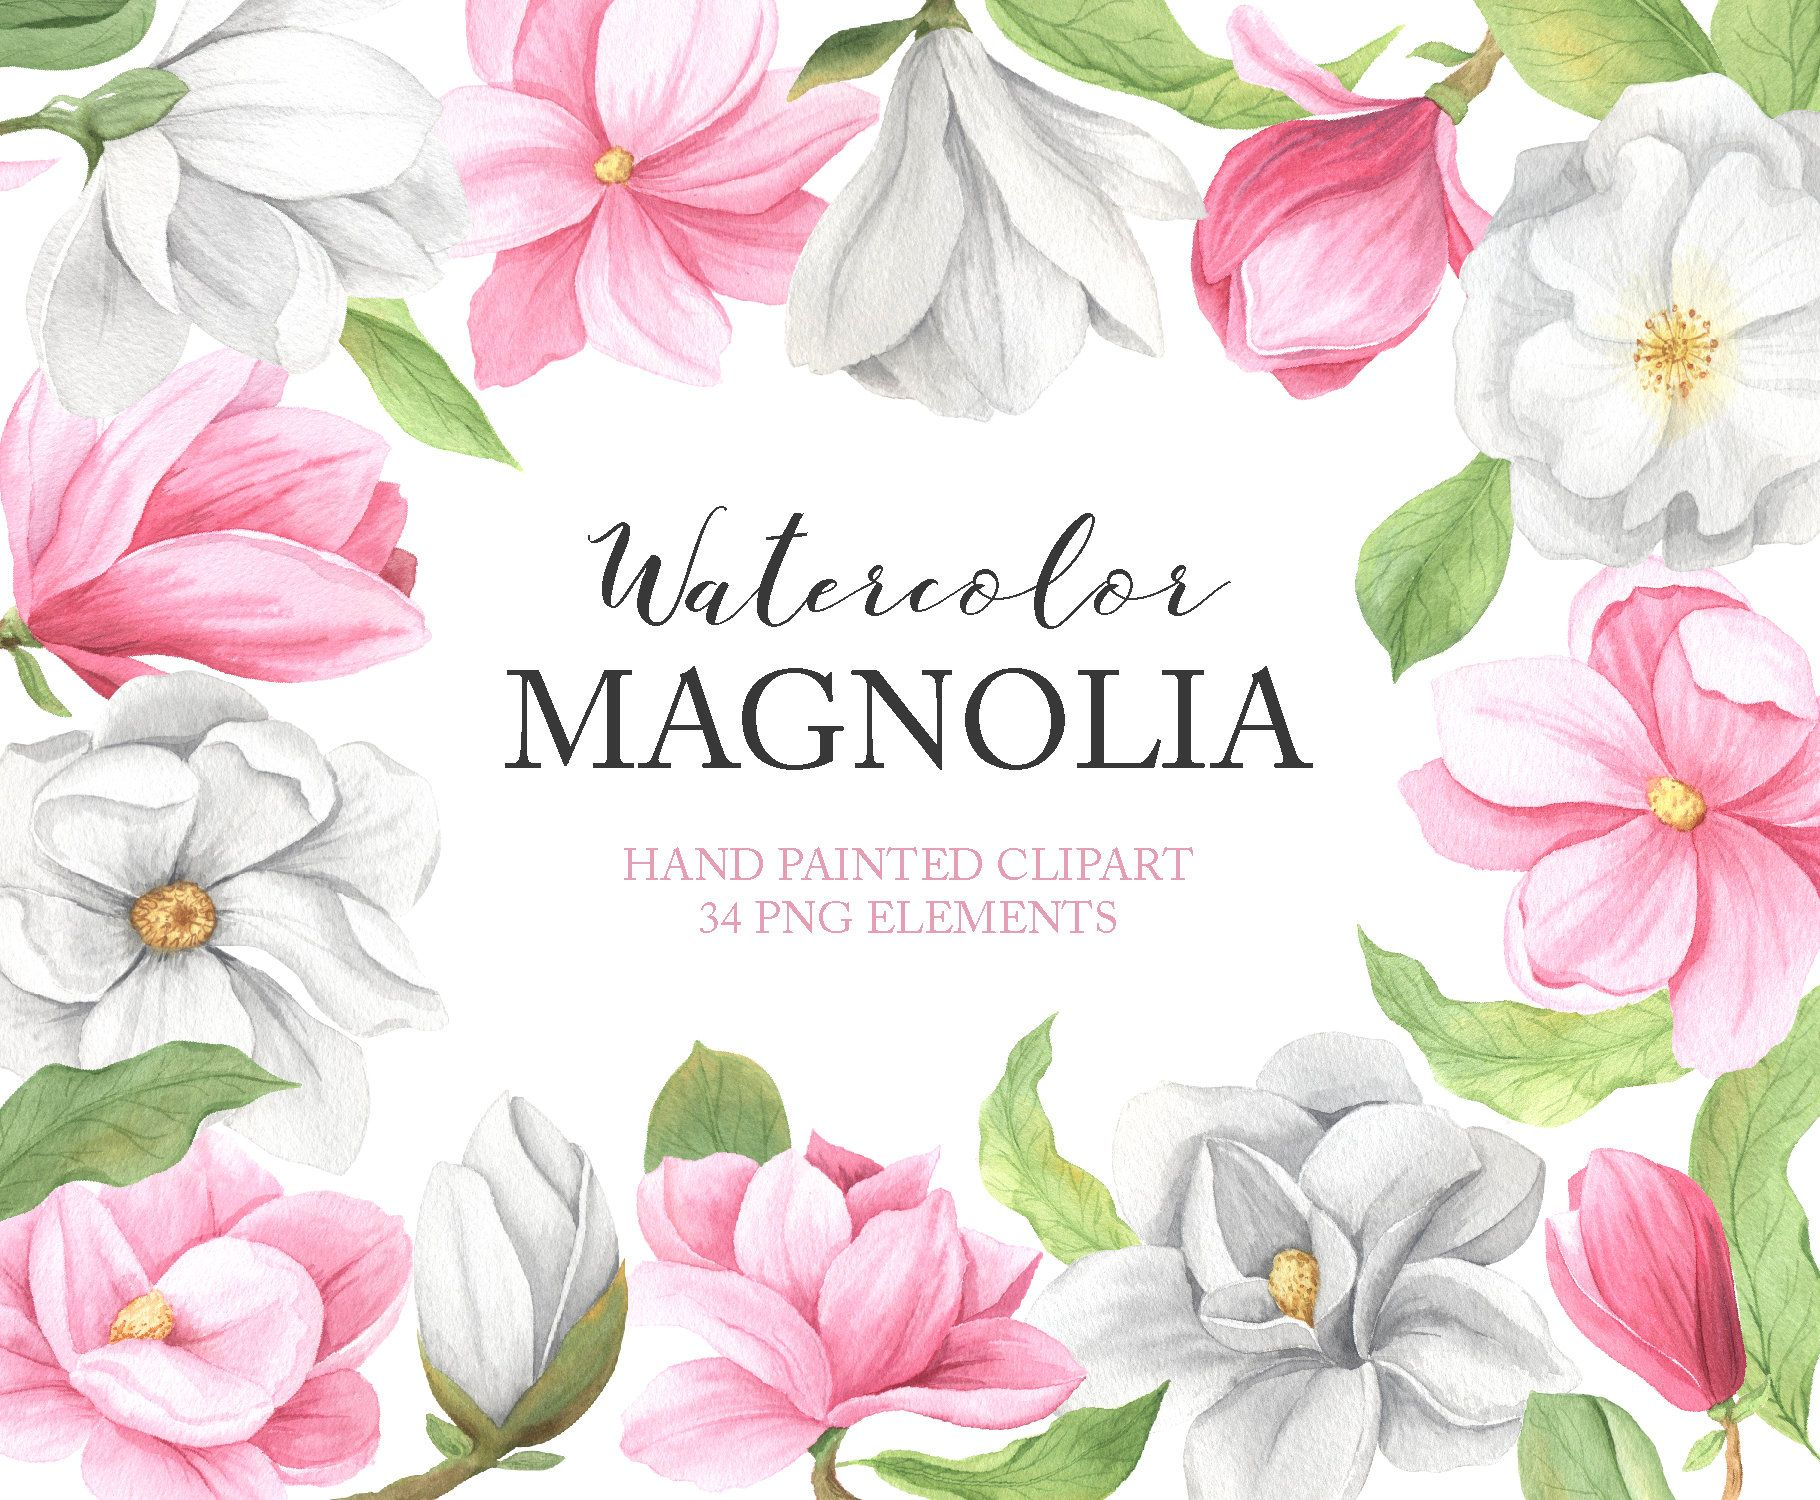 Watercolor Magnolia Flowers Clipart Summer Floral Clip Art Etsy In 2020 Magnolia Flower Clip Art Flower Frame